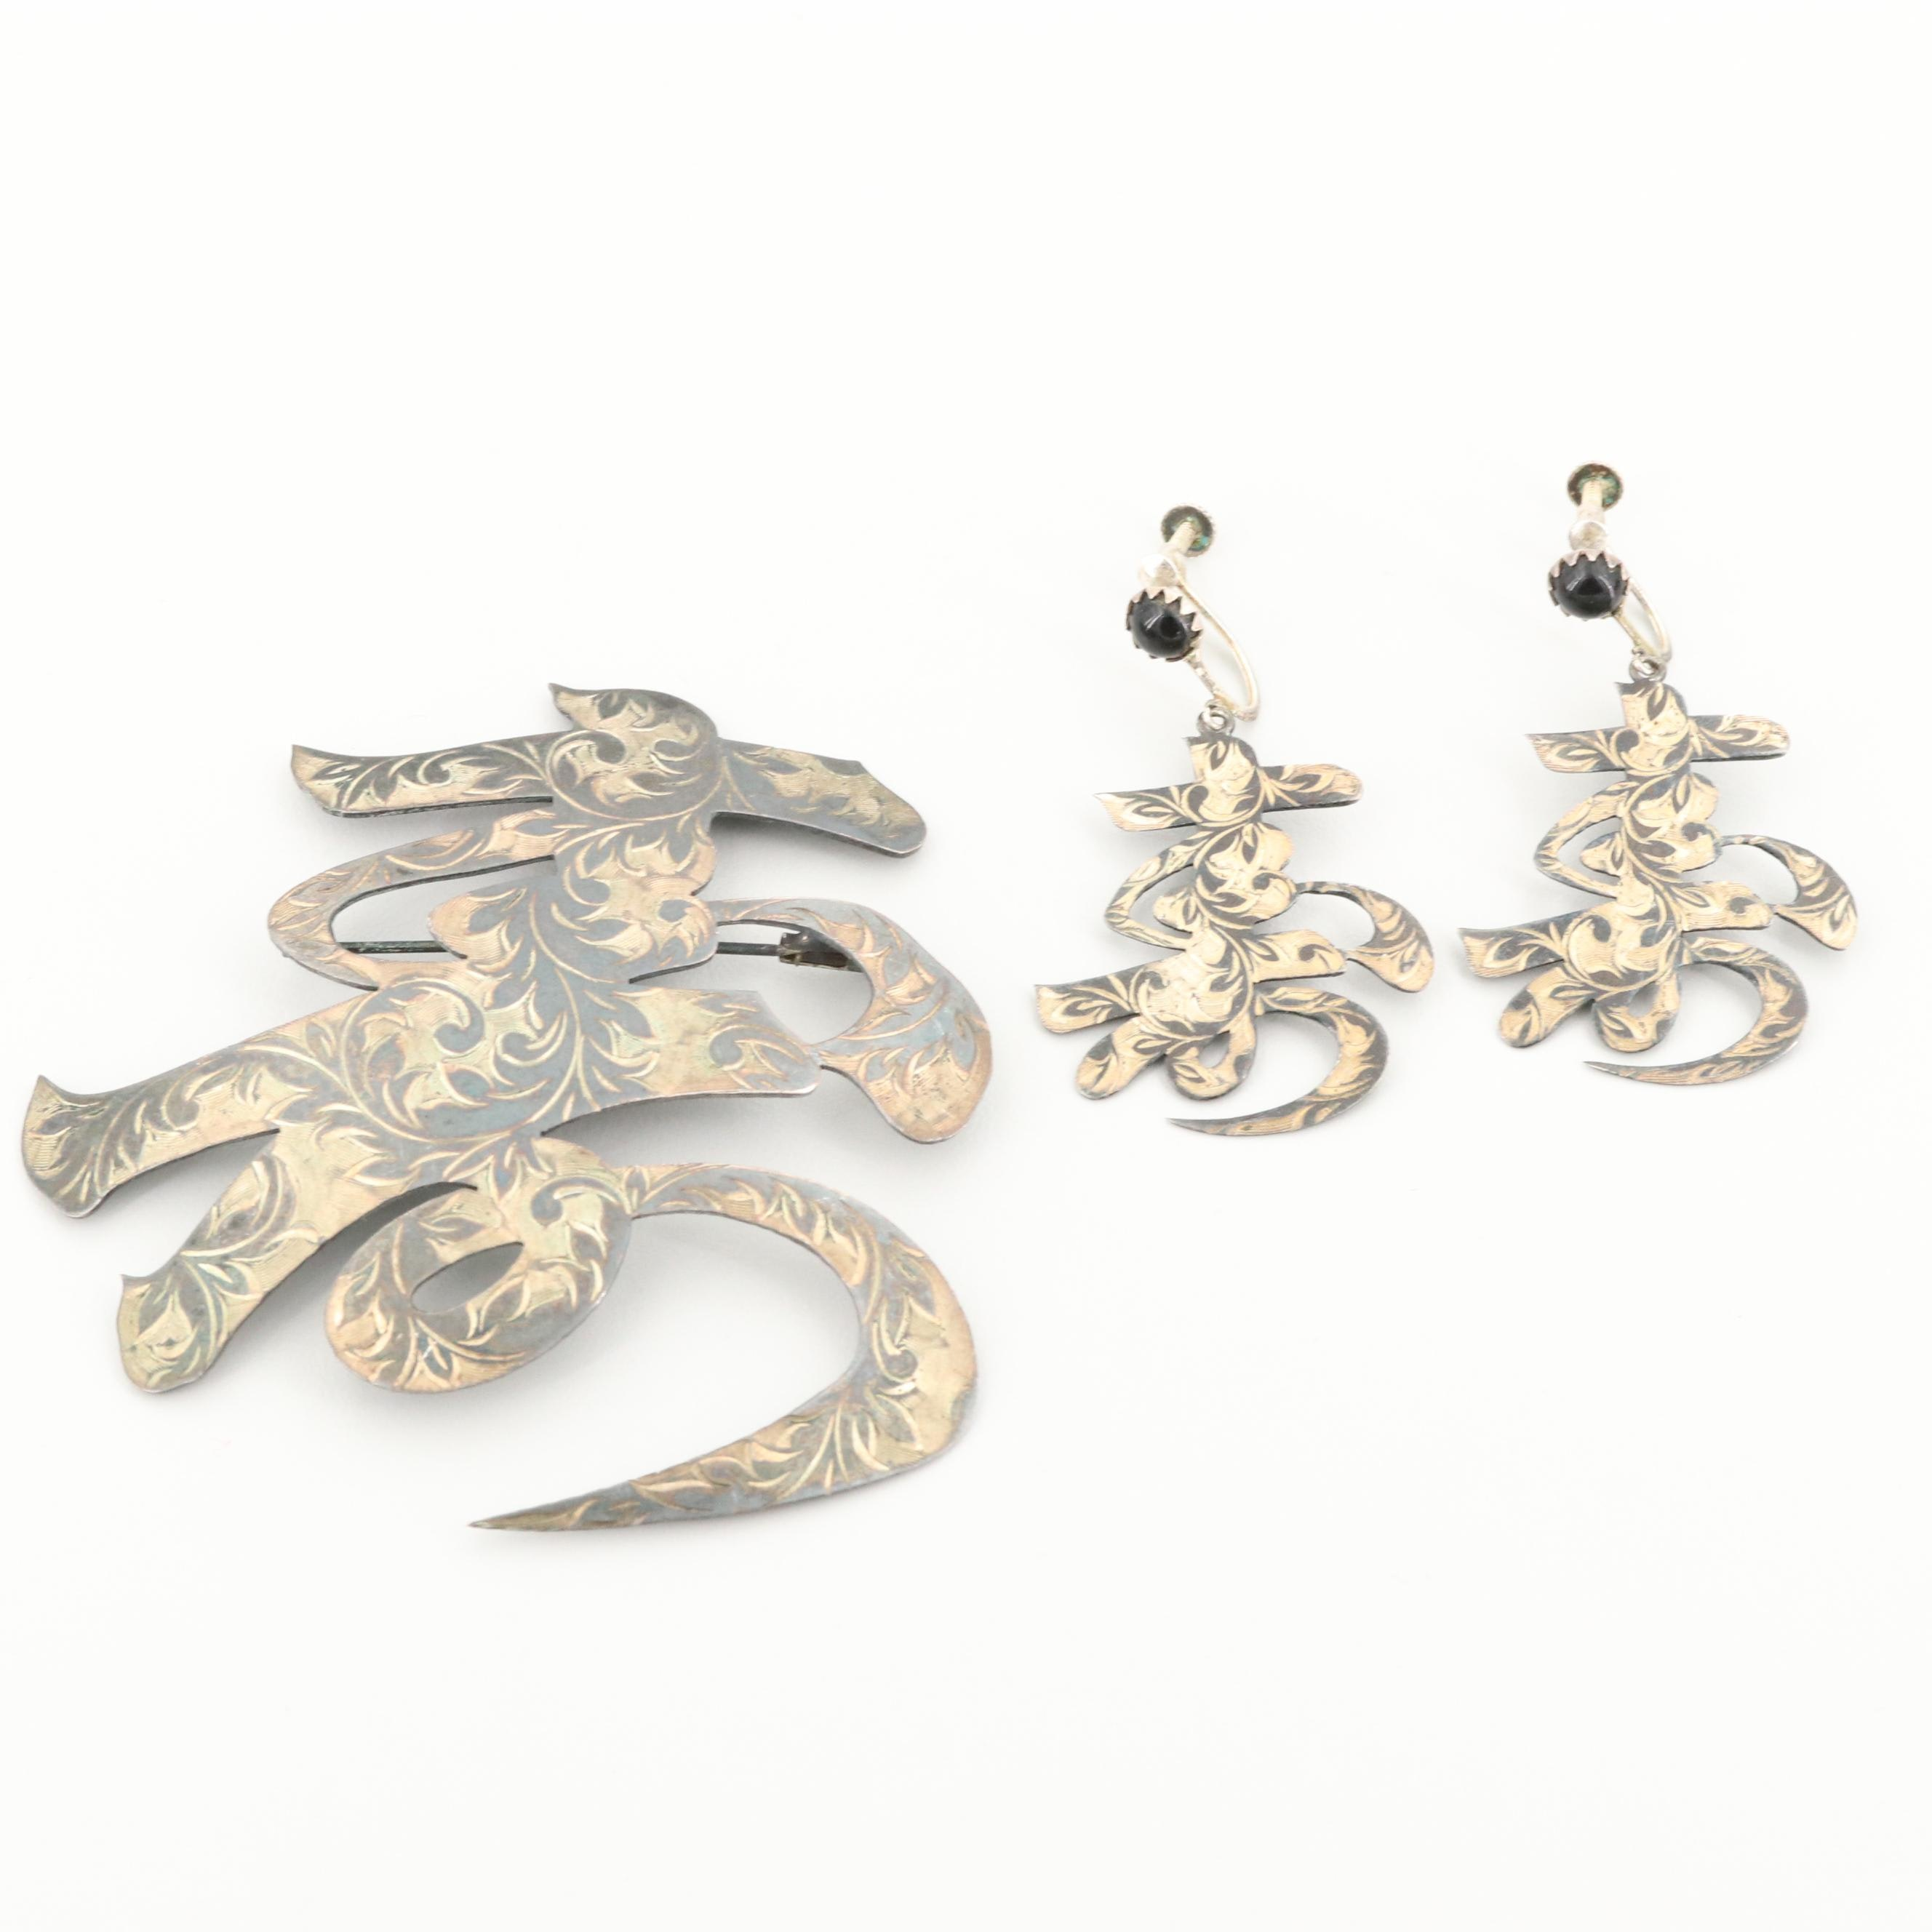 950 Sterling Silver Niello Brooch and Earring Set